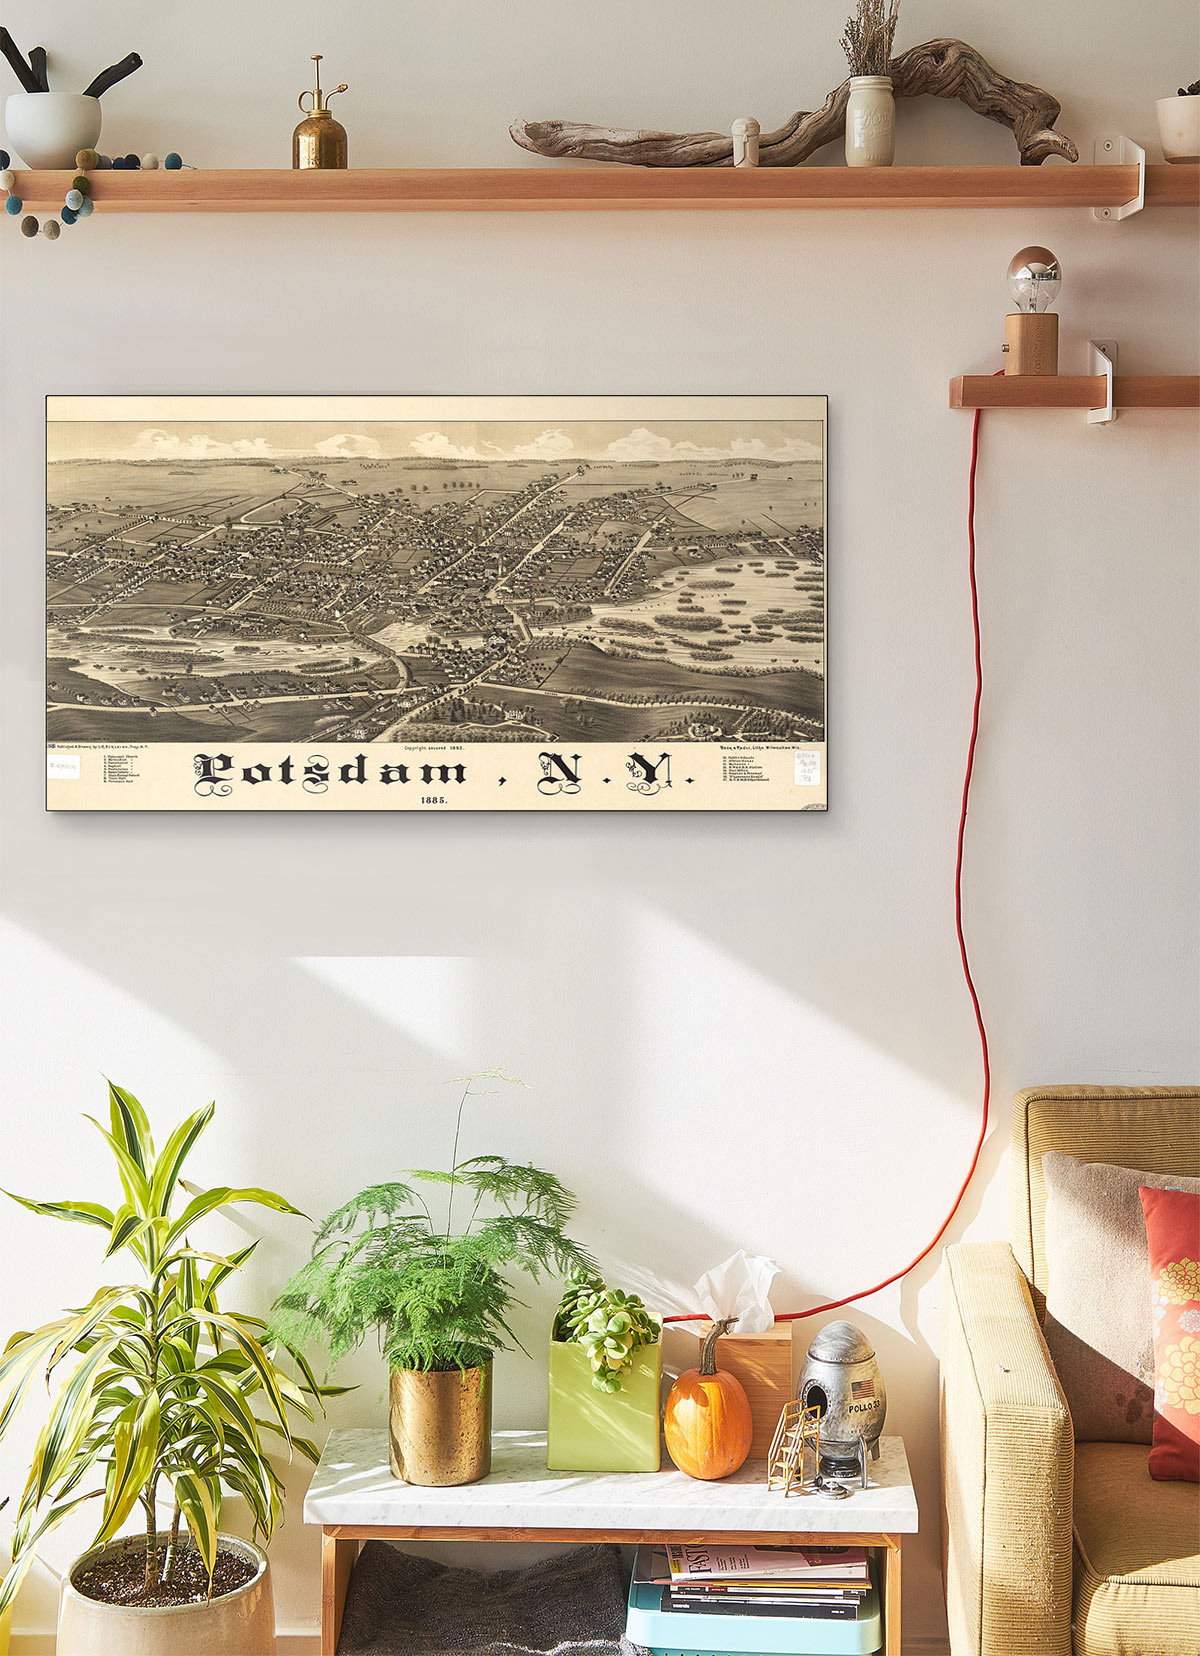 Potsdam N.y 1885 LARGE Vintage Map